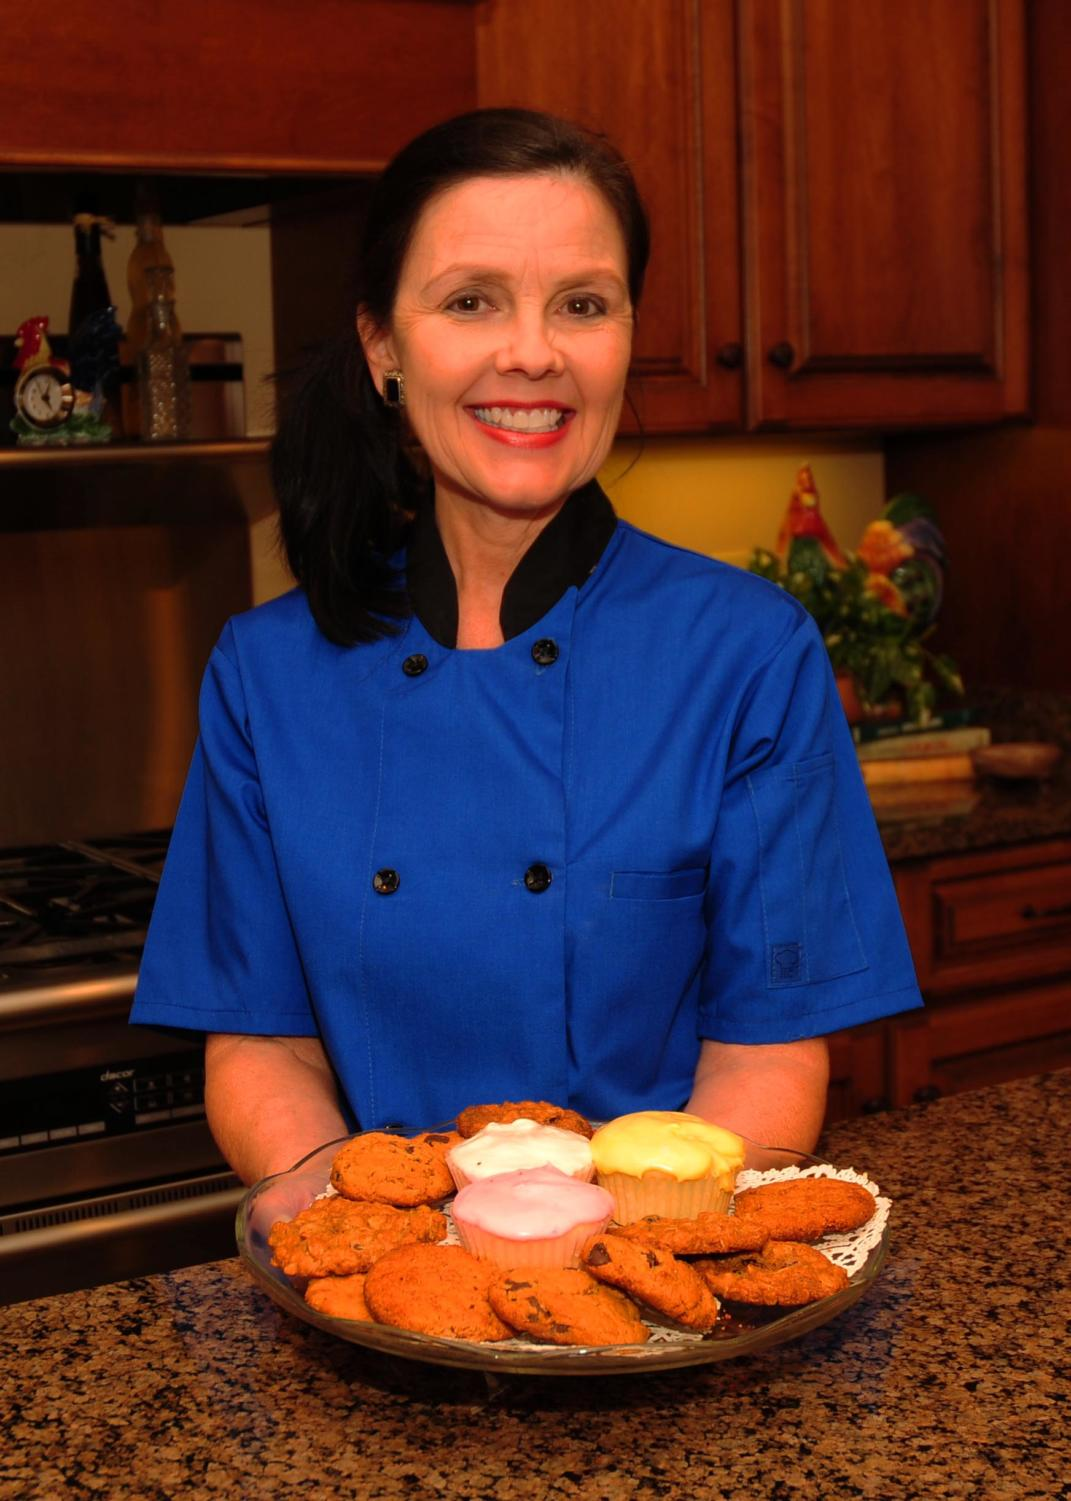 Mrs. Whittington stands in her kitchen with a batch of freshly baked cookies.